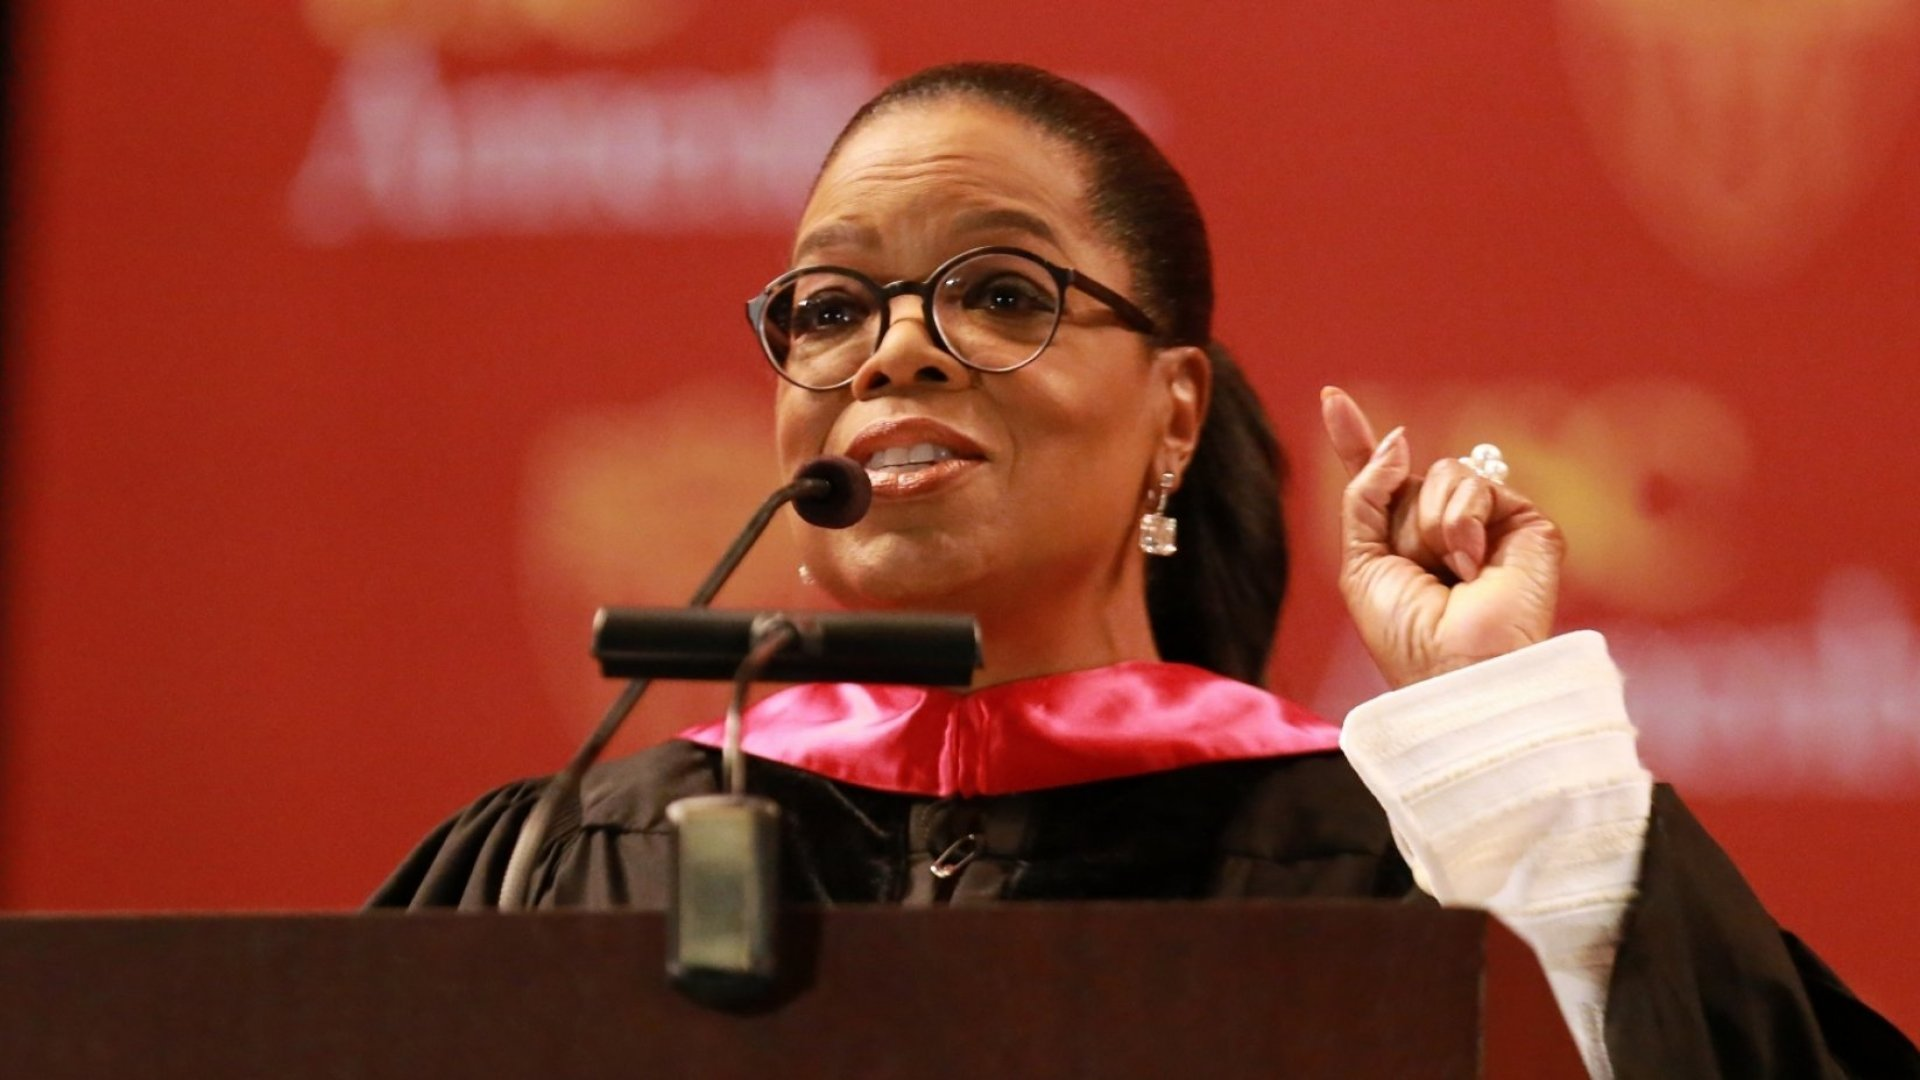 Oprah Winfrey speaks at the USC Annenberg School for Communication and Journalism commencement ceremony at the Shrine Auditorium on May 11, 2018, in Los Angeles.